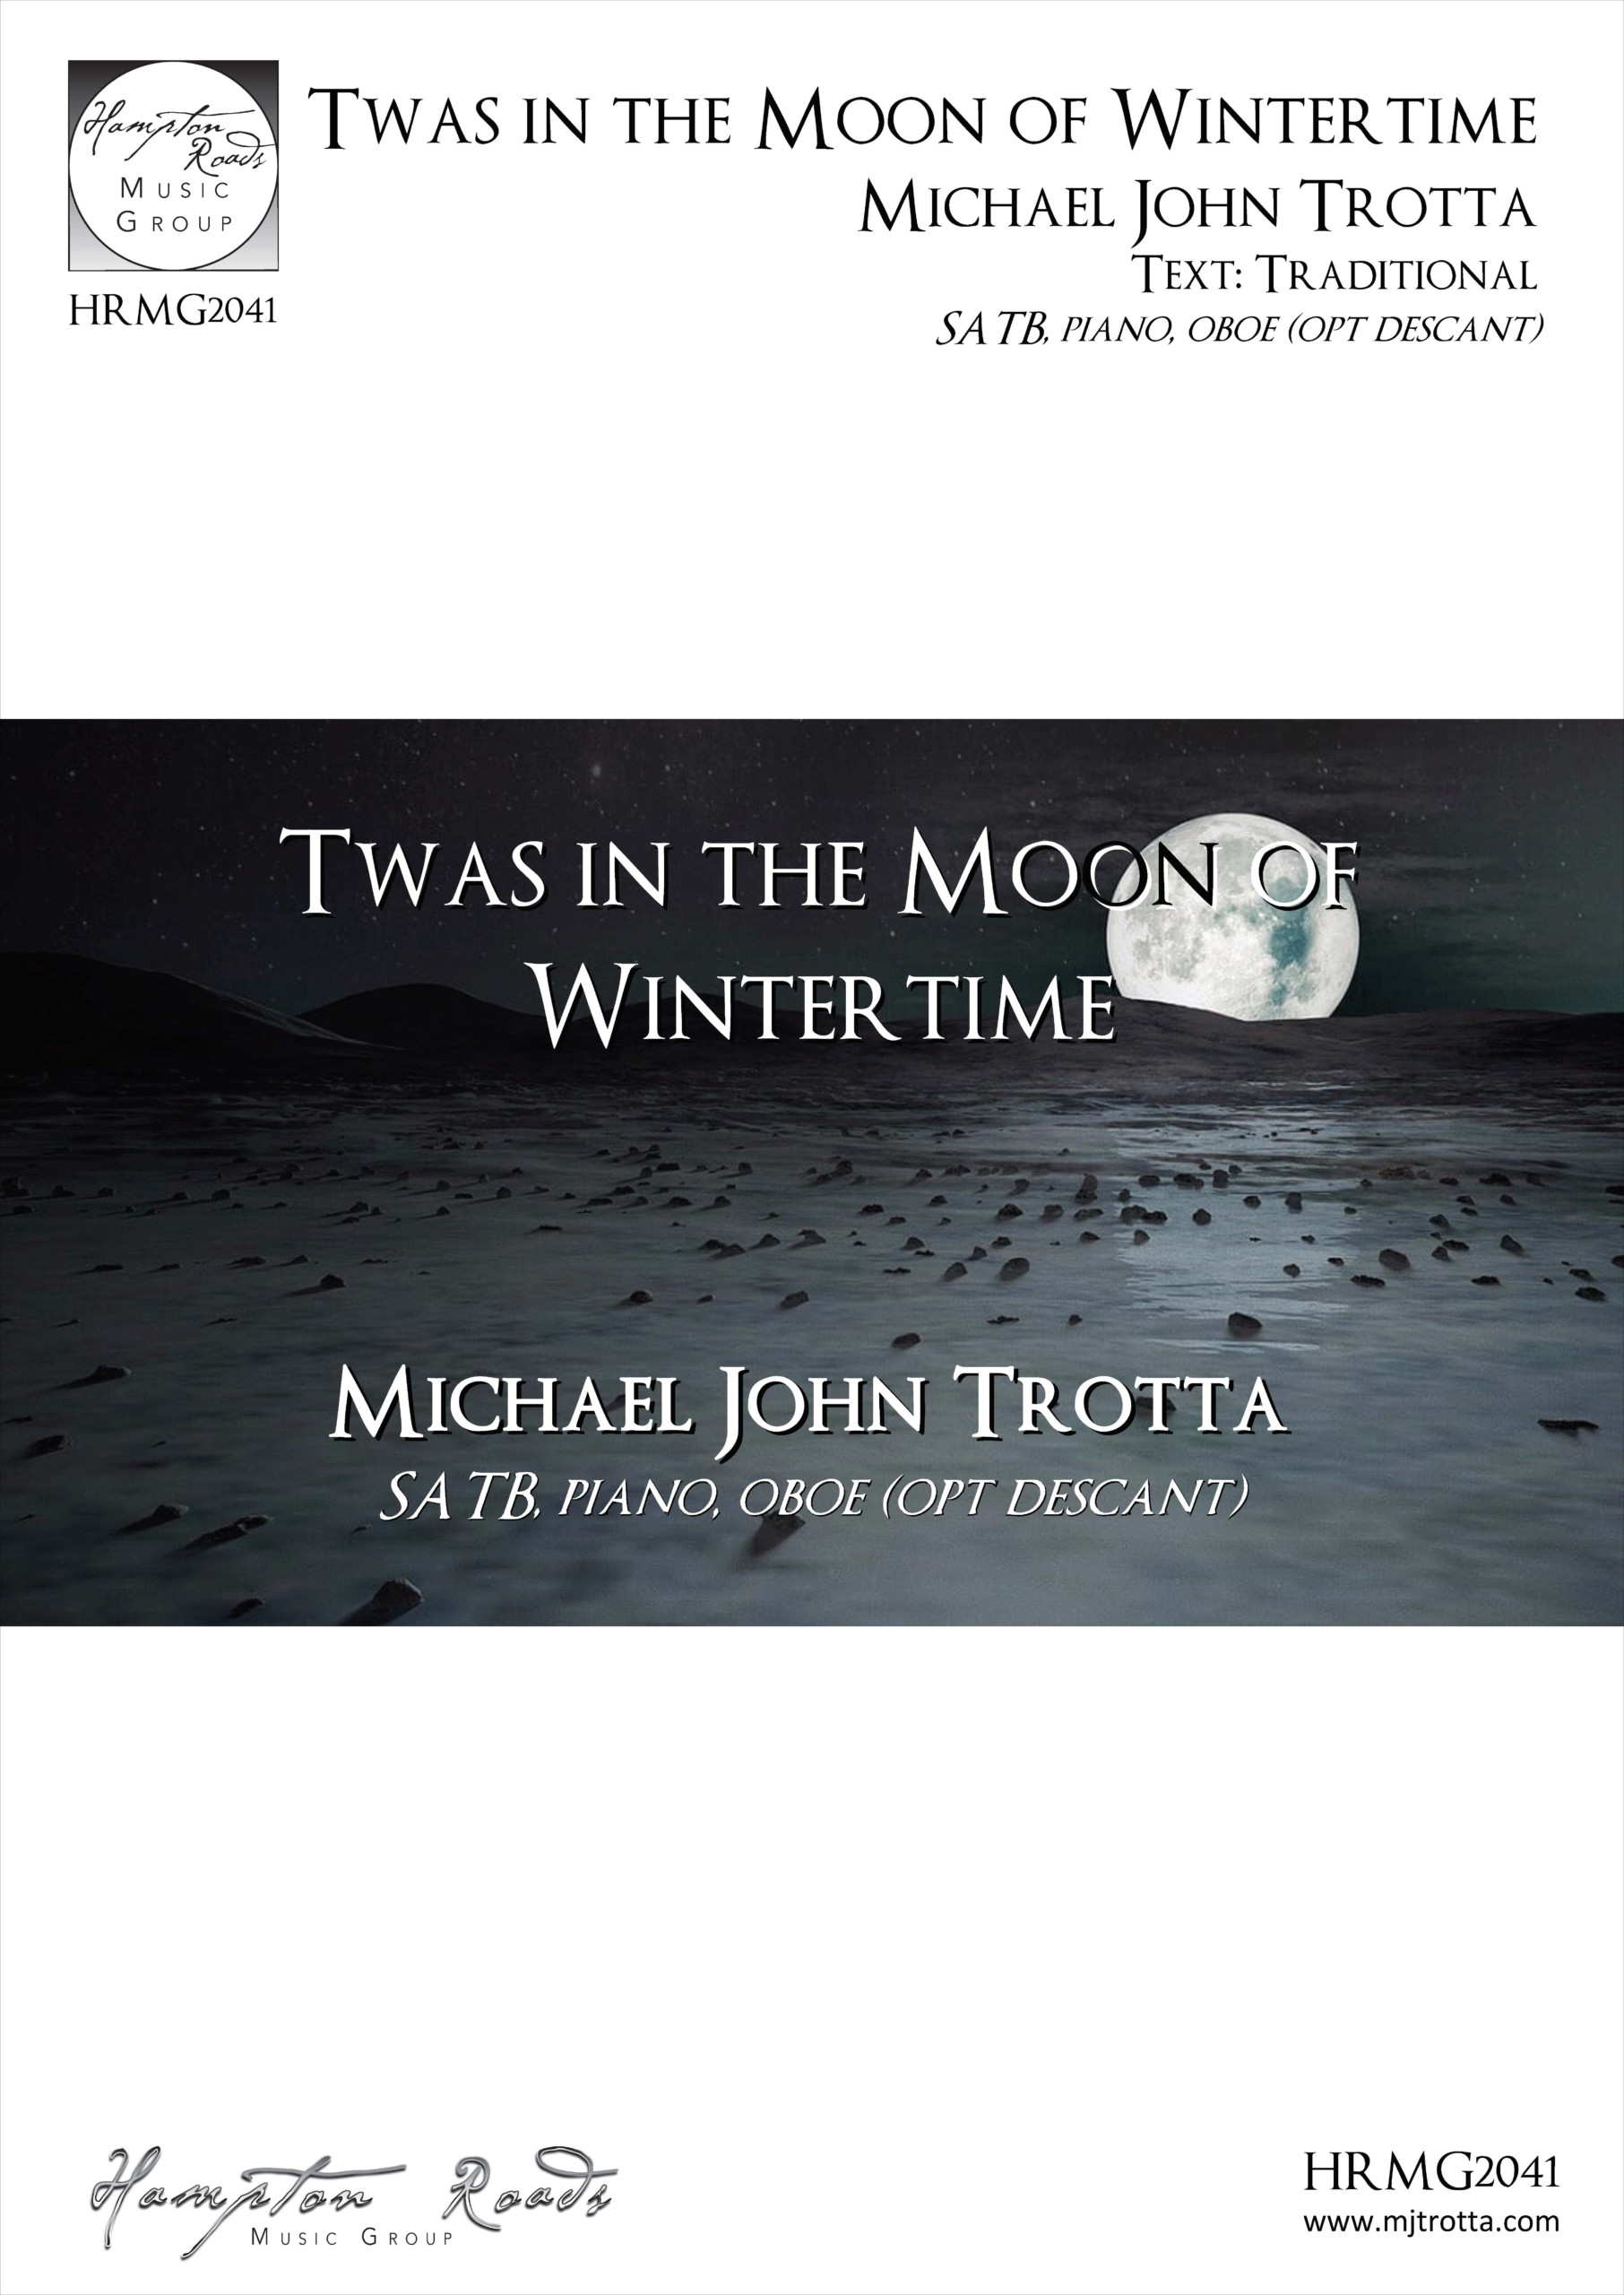 'Twas in the Moon of Wintertime - Michael John Trotta